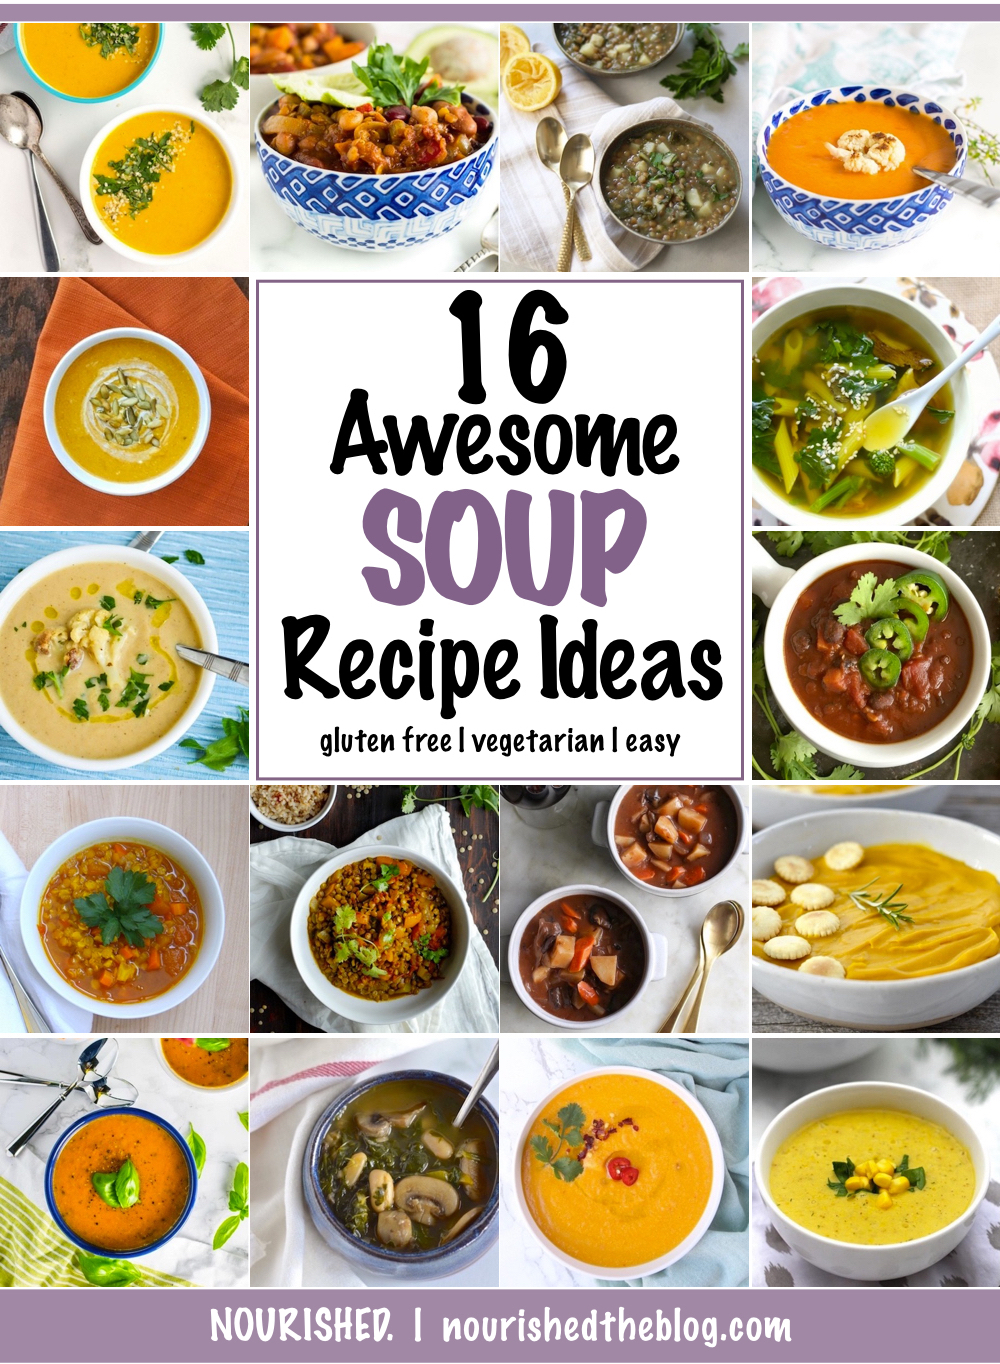 16 Awesome Soup Recipe Ideas | The BEST soups, stews and chilis from around the internet!